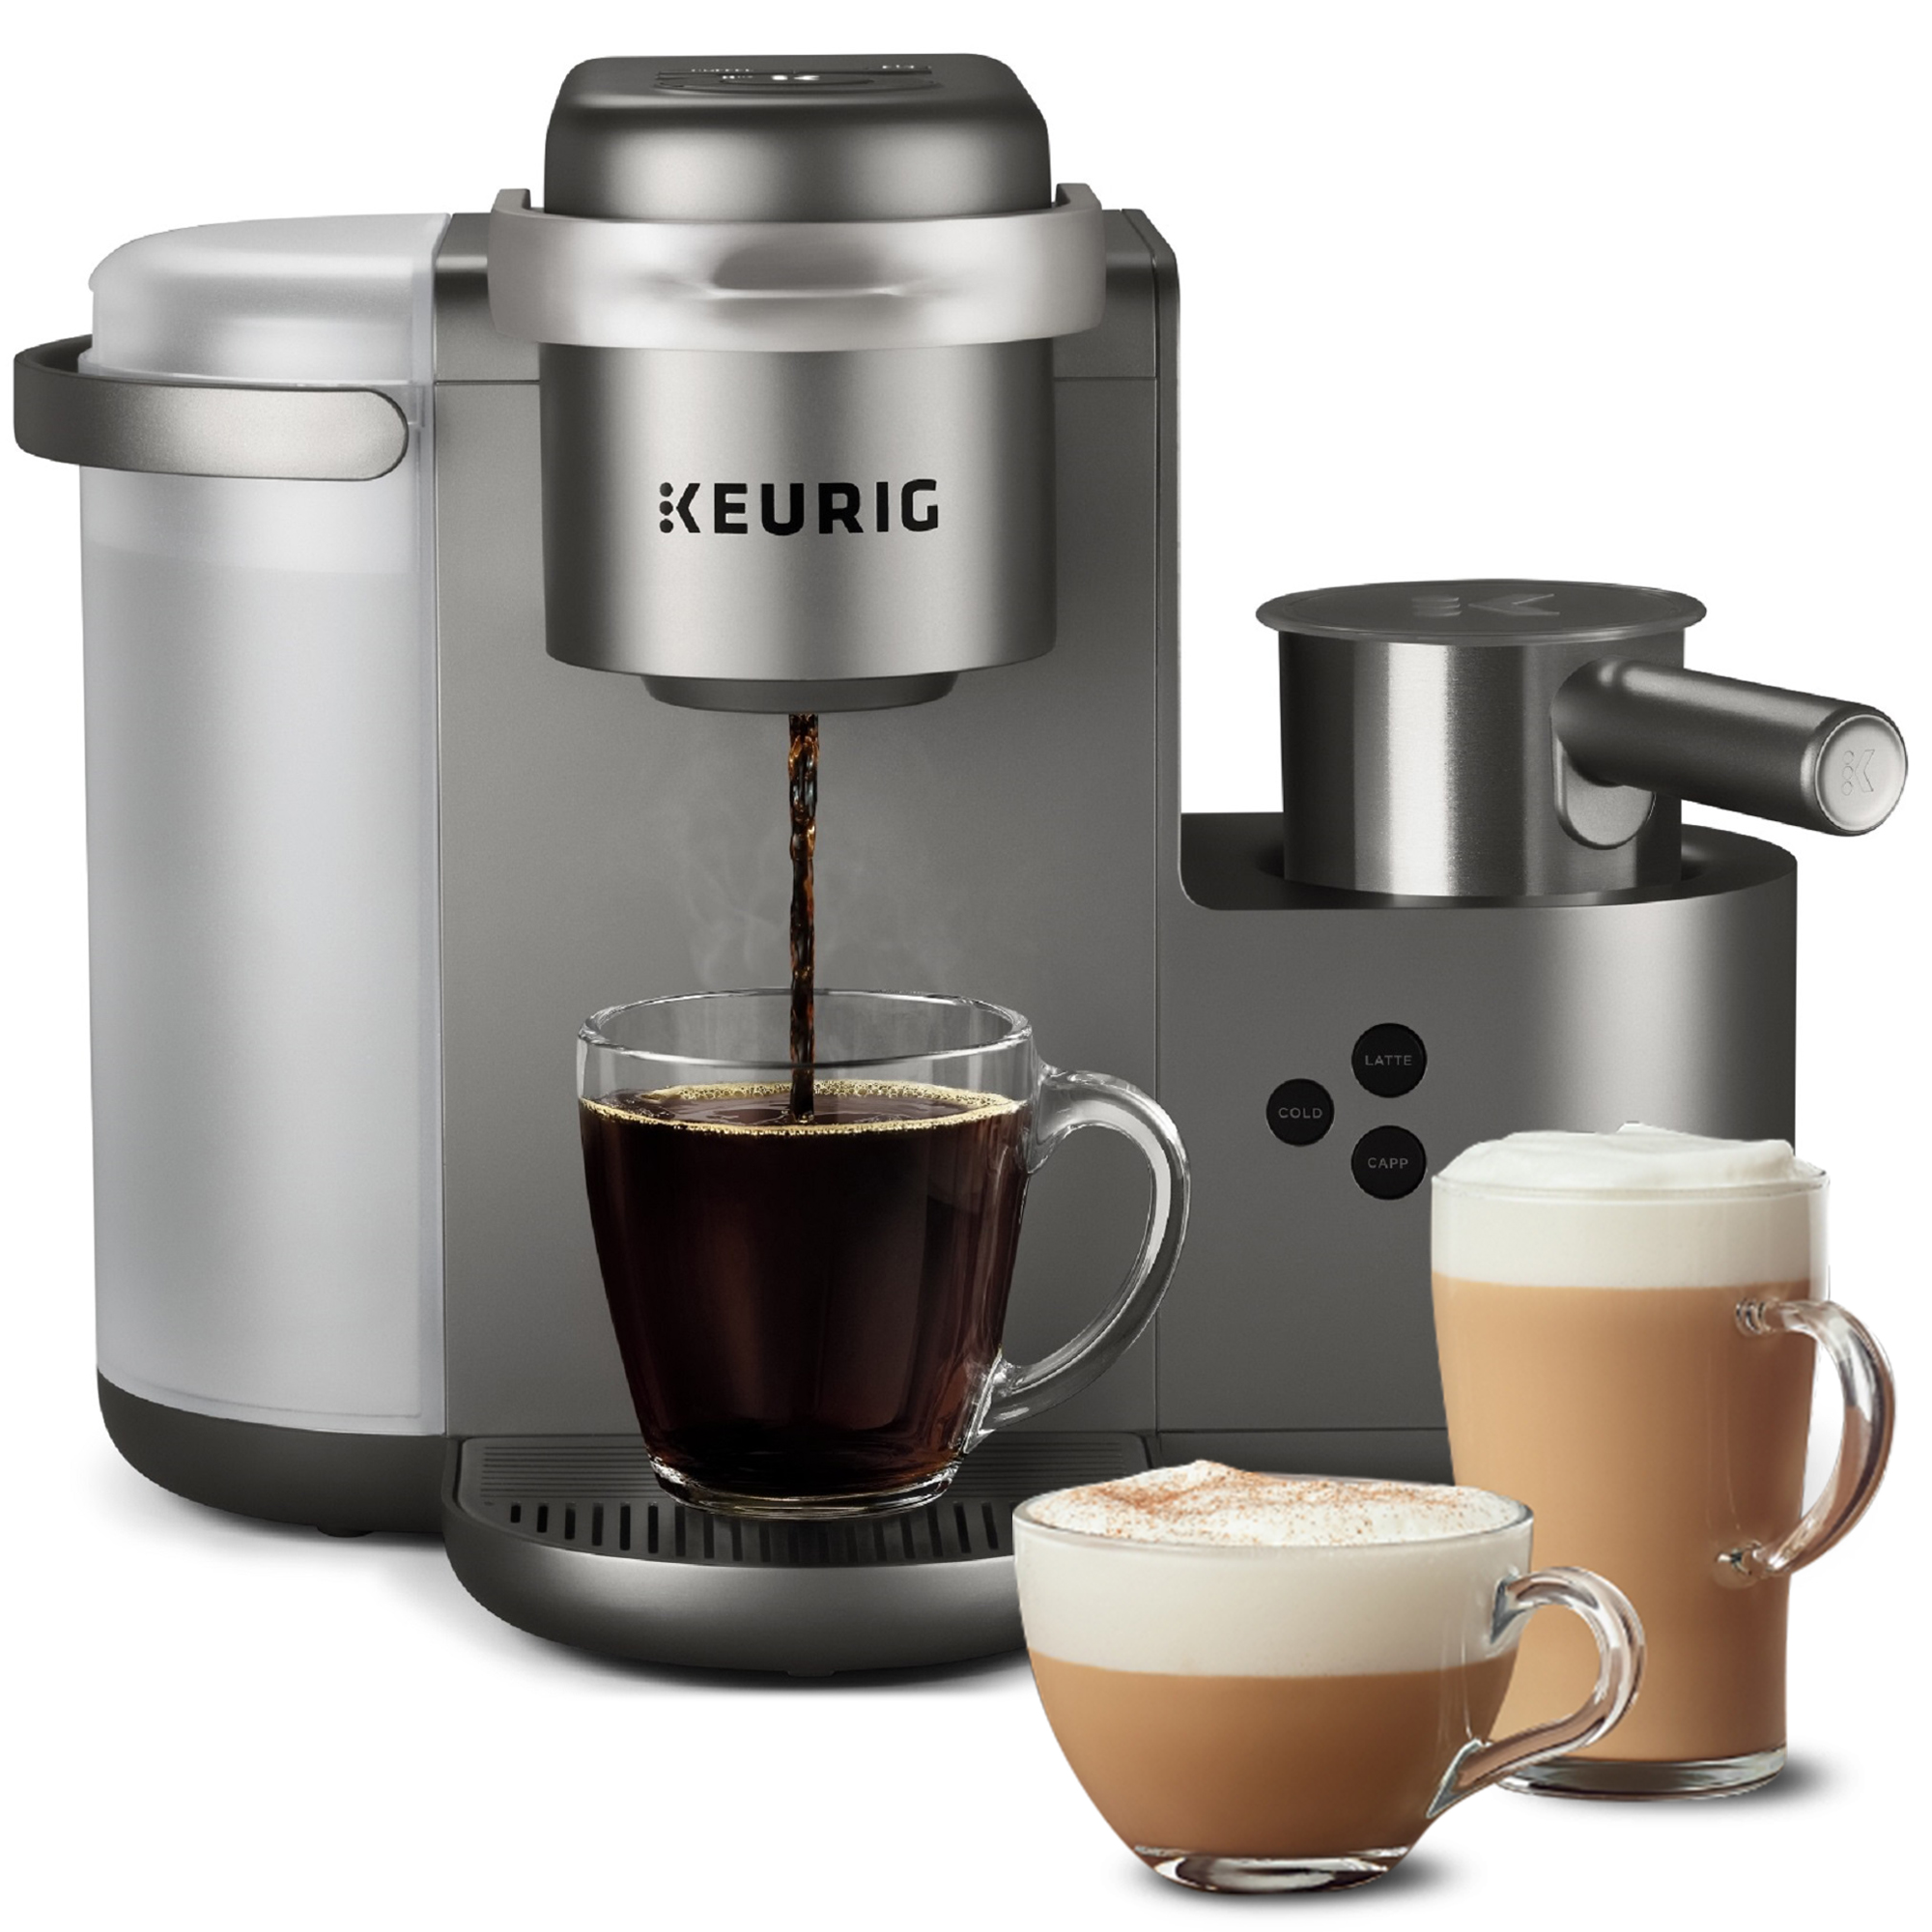 Keurig K-Cafe Special Edition Single Serve K-Cup Pod Coffee, Latte and Cappuccino Maker, Nickel